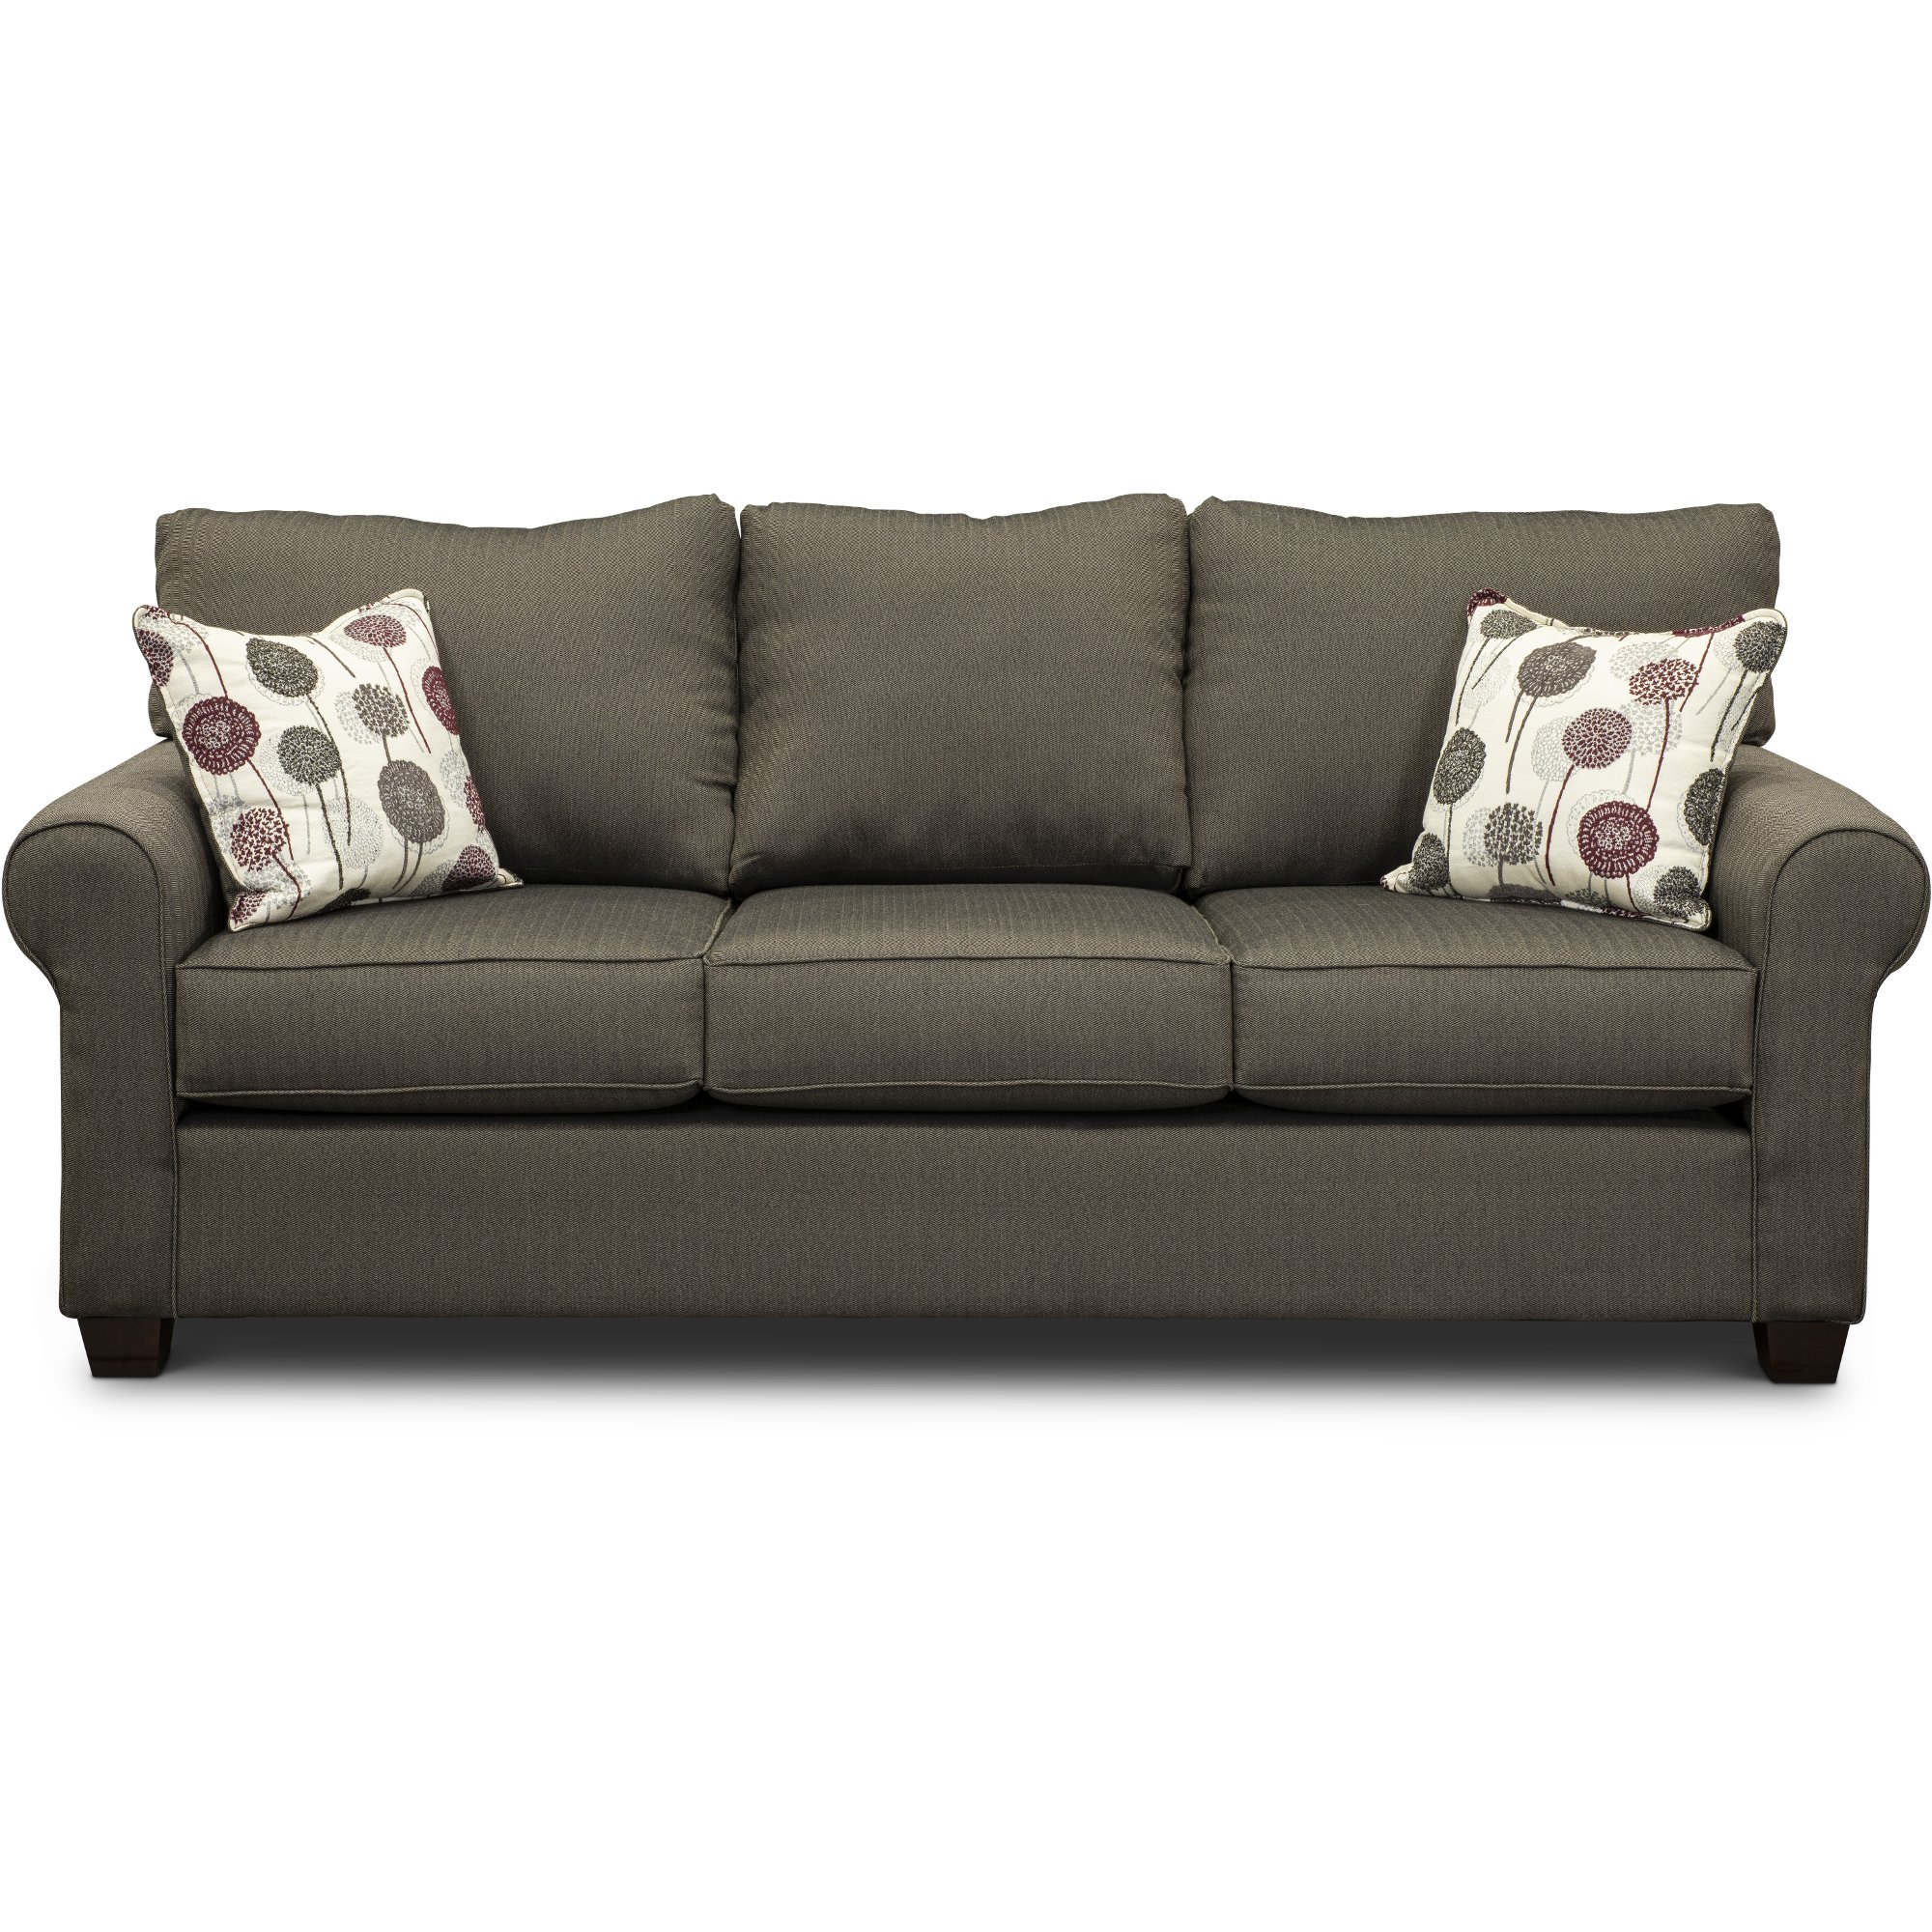 spanish sofa brand camerich cleaning fabric sofas and couches 24 best style furniture